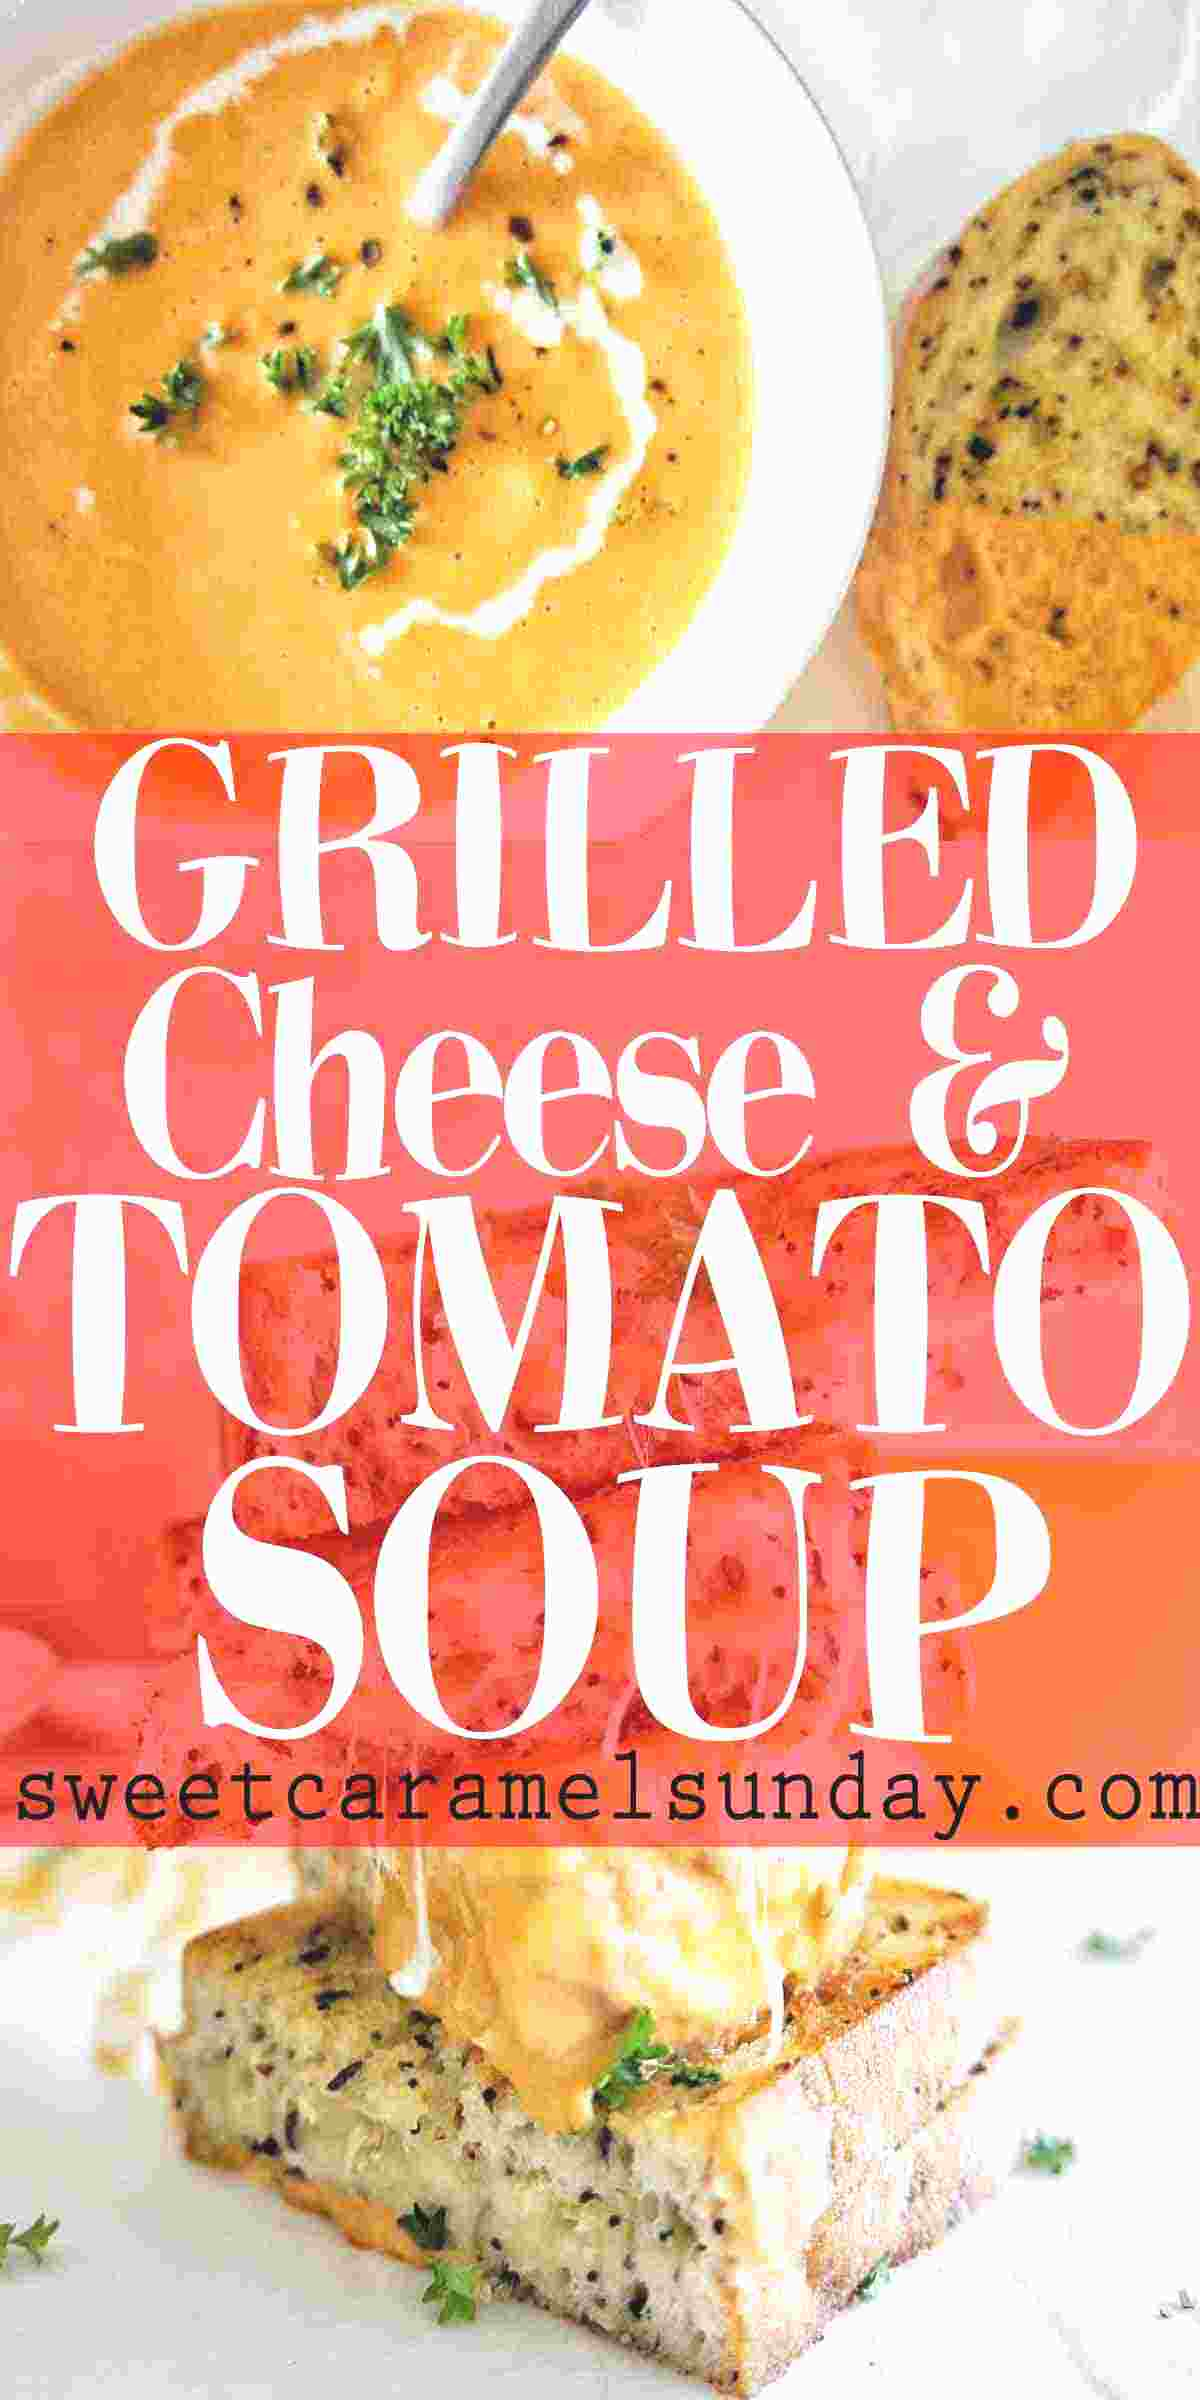 Grilled Cheese and Tomato Soup in a bowl with text overlay